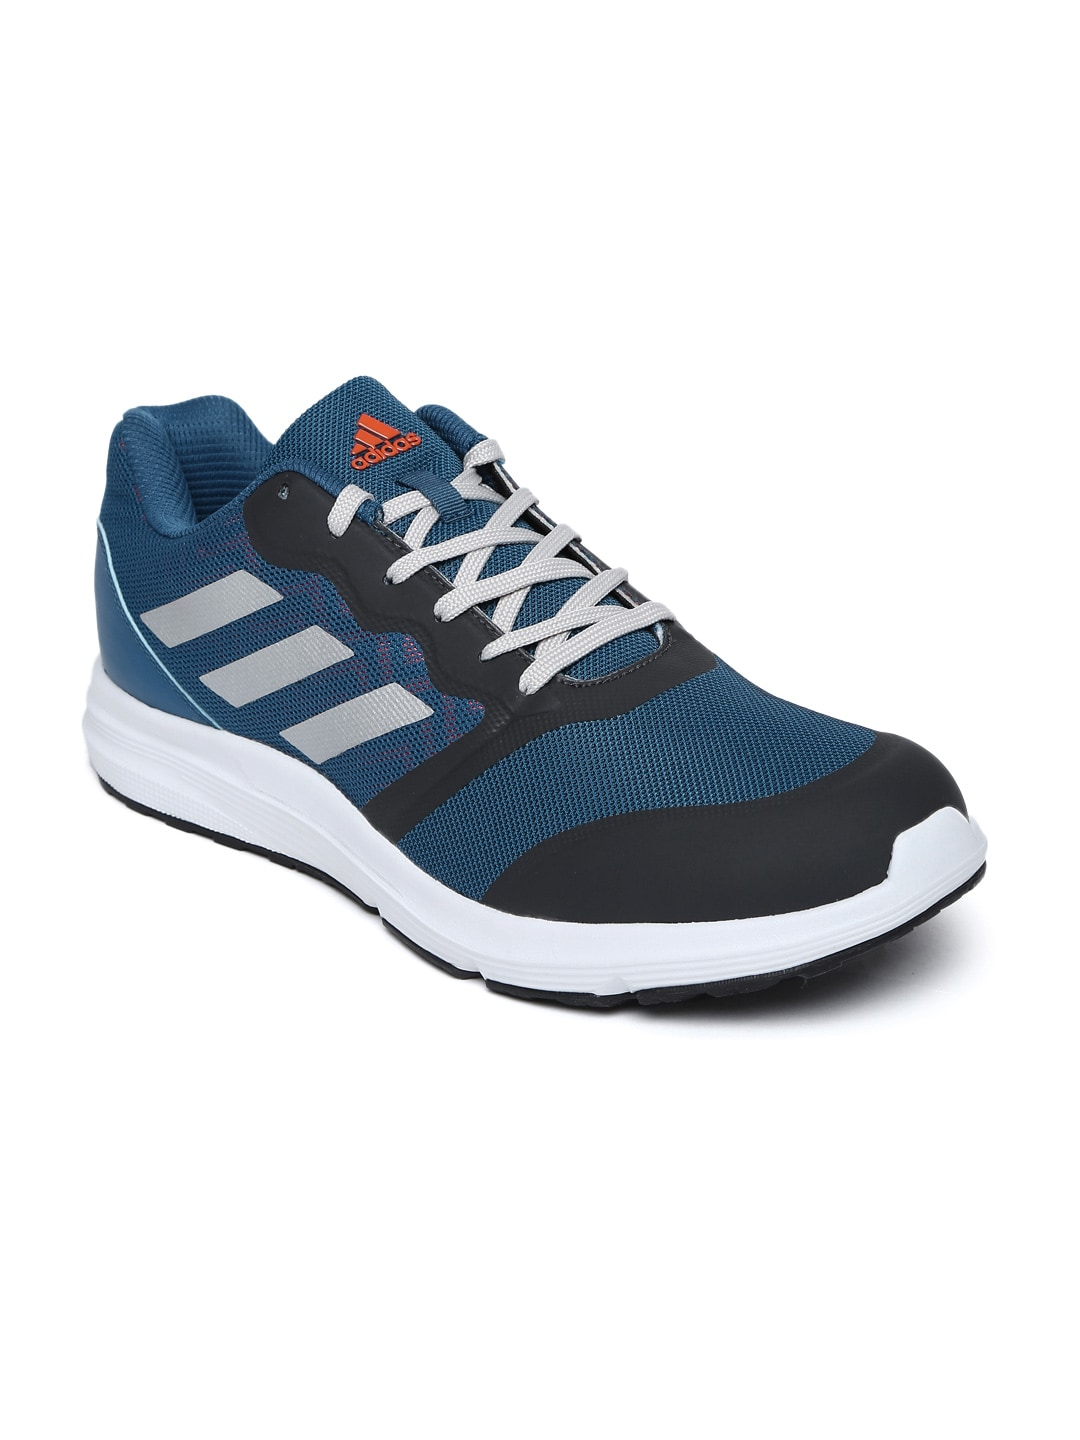 more photos 09129 06311 Adidas In India 3 Purses Sports Shoes - Buy Adidas In India 3 Purses Sports  Shoes online in India